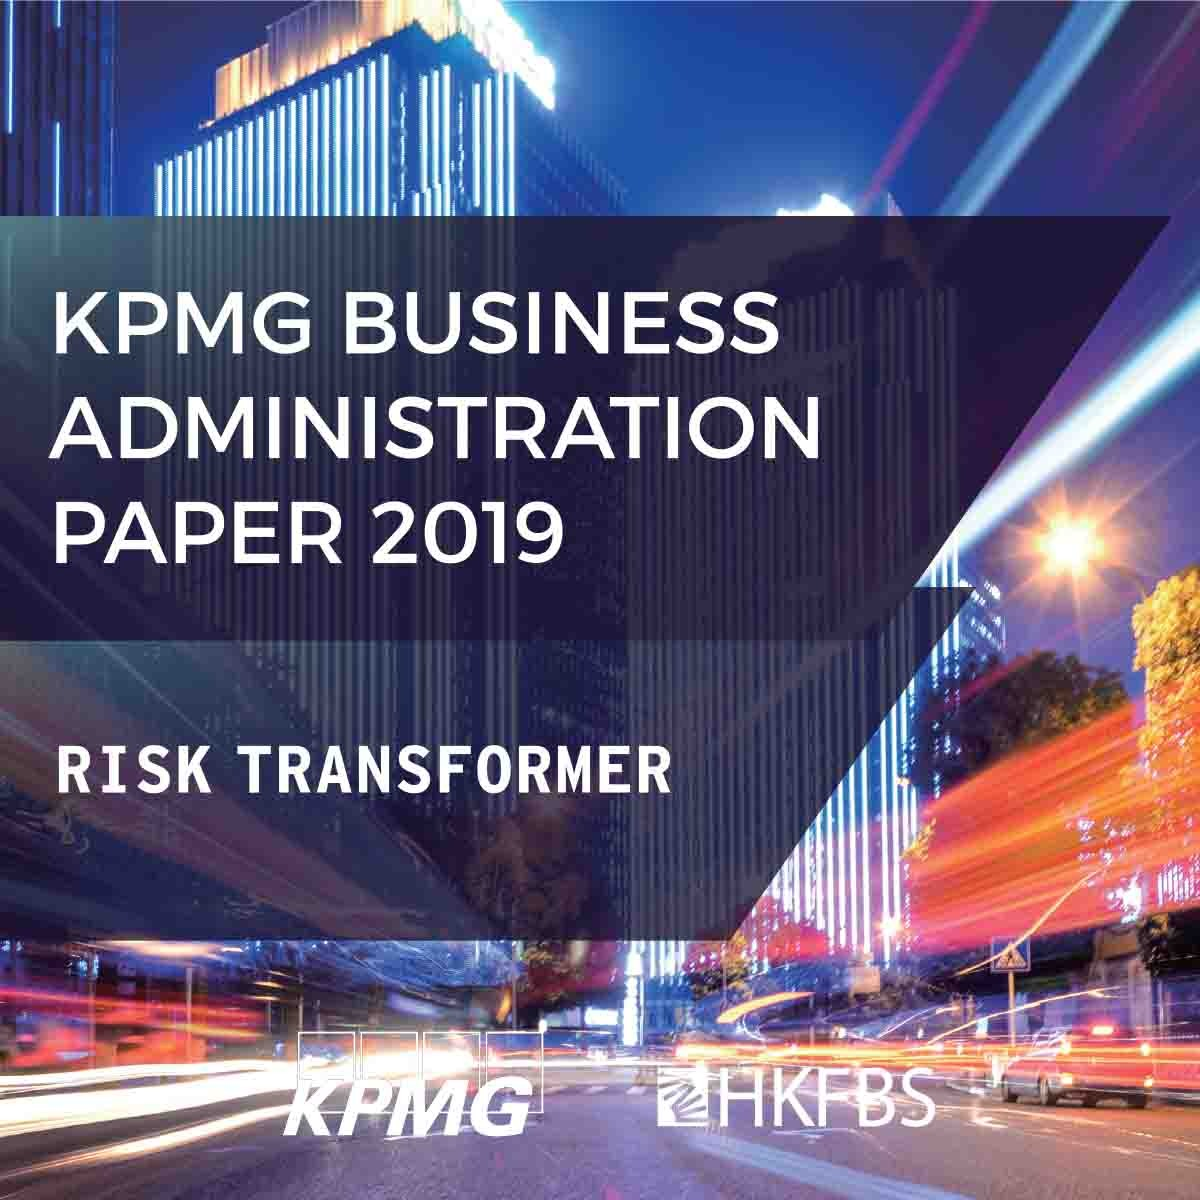 KPMG Business Administration Paper 2019